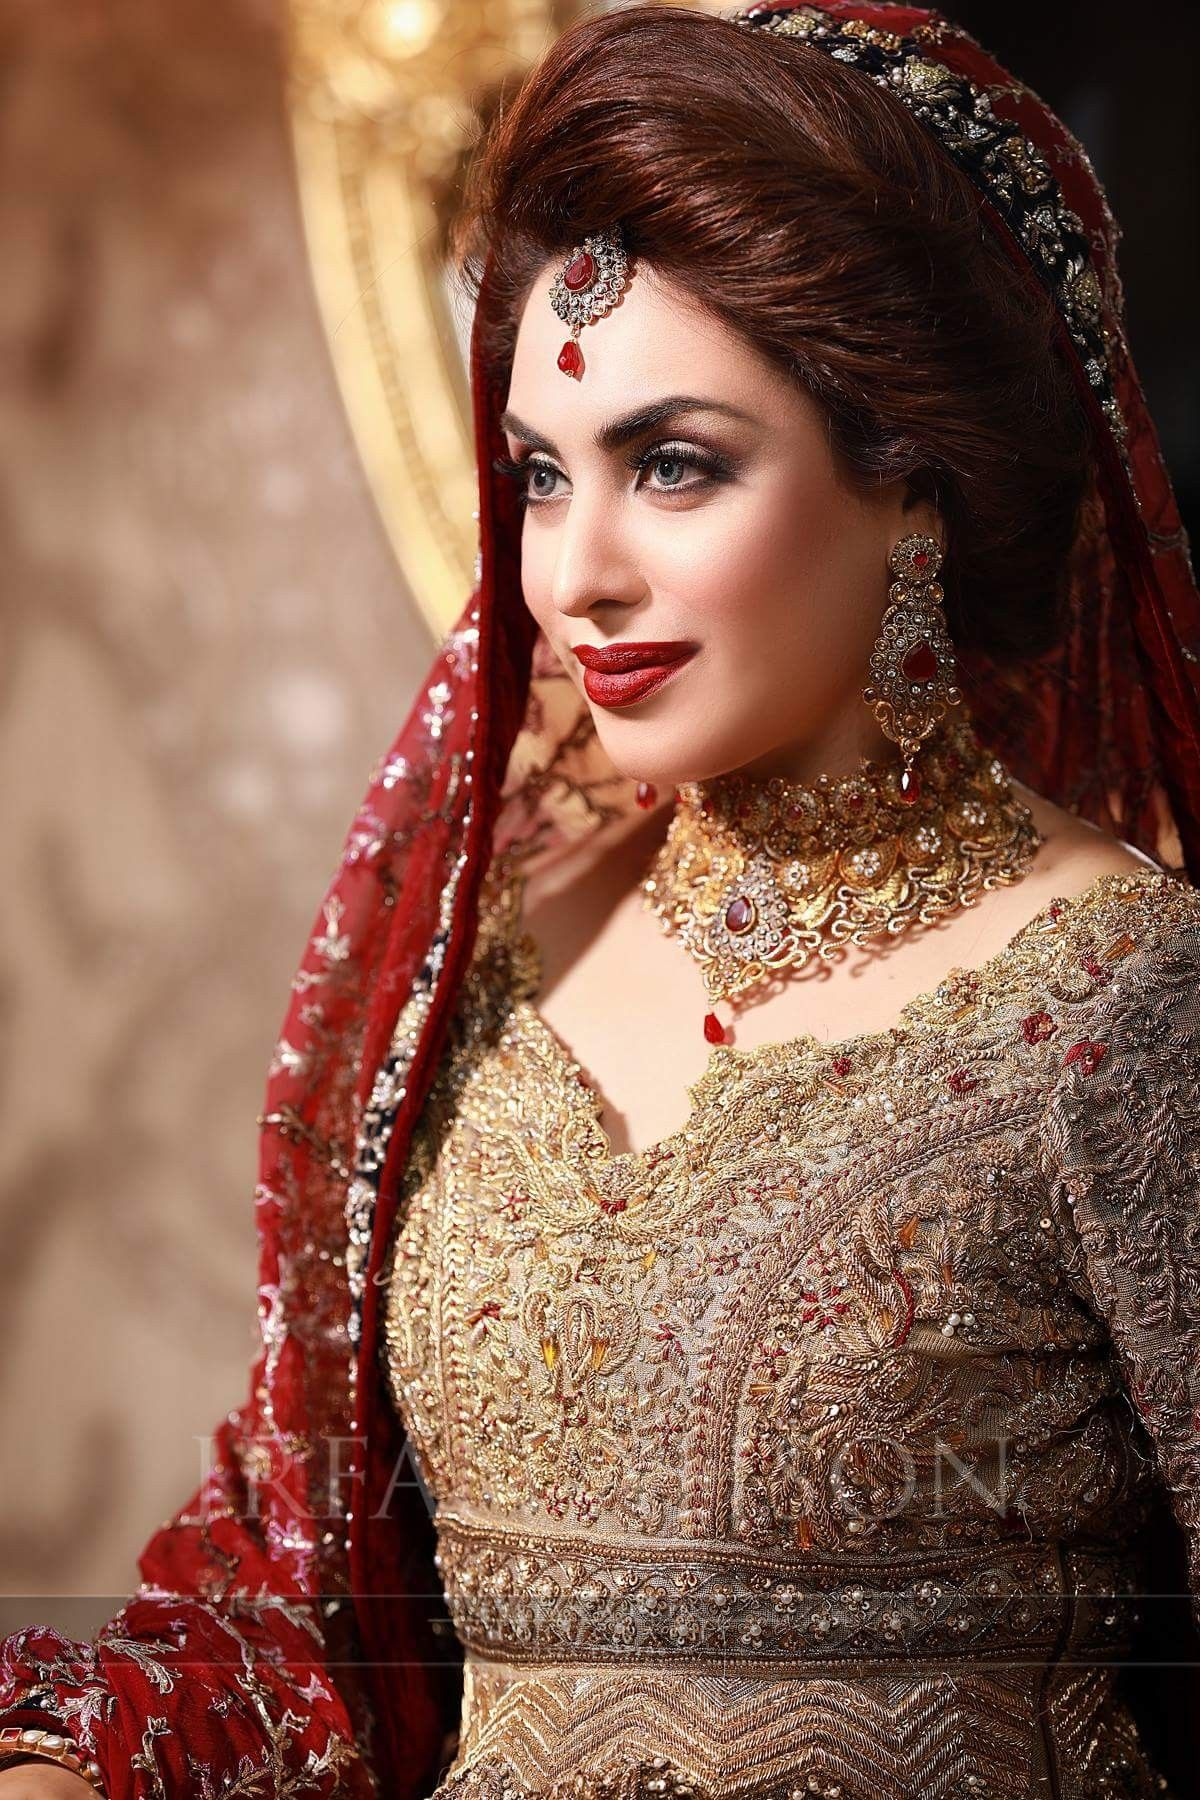 Pin By Aimen Umar On Brides Pinterest Pakistani Pakistan Wedding And Muslim Brides